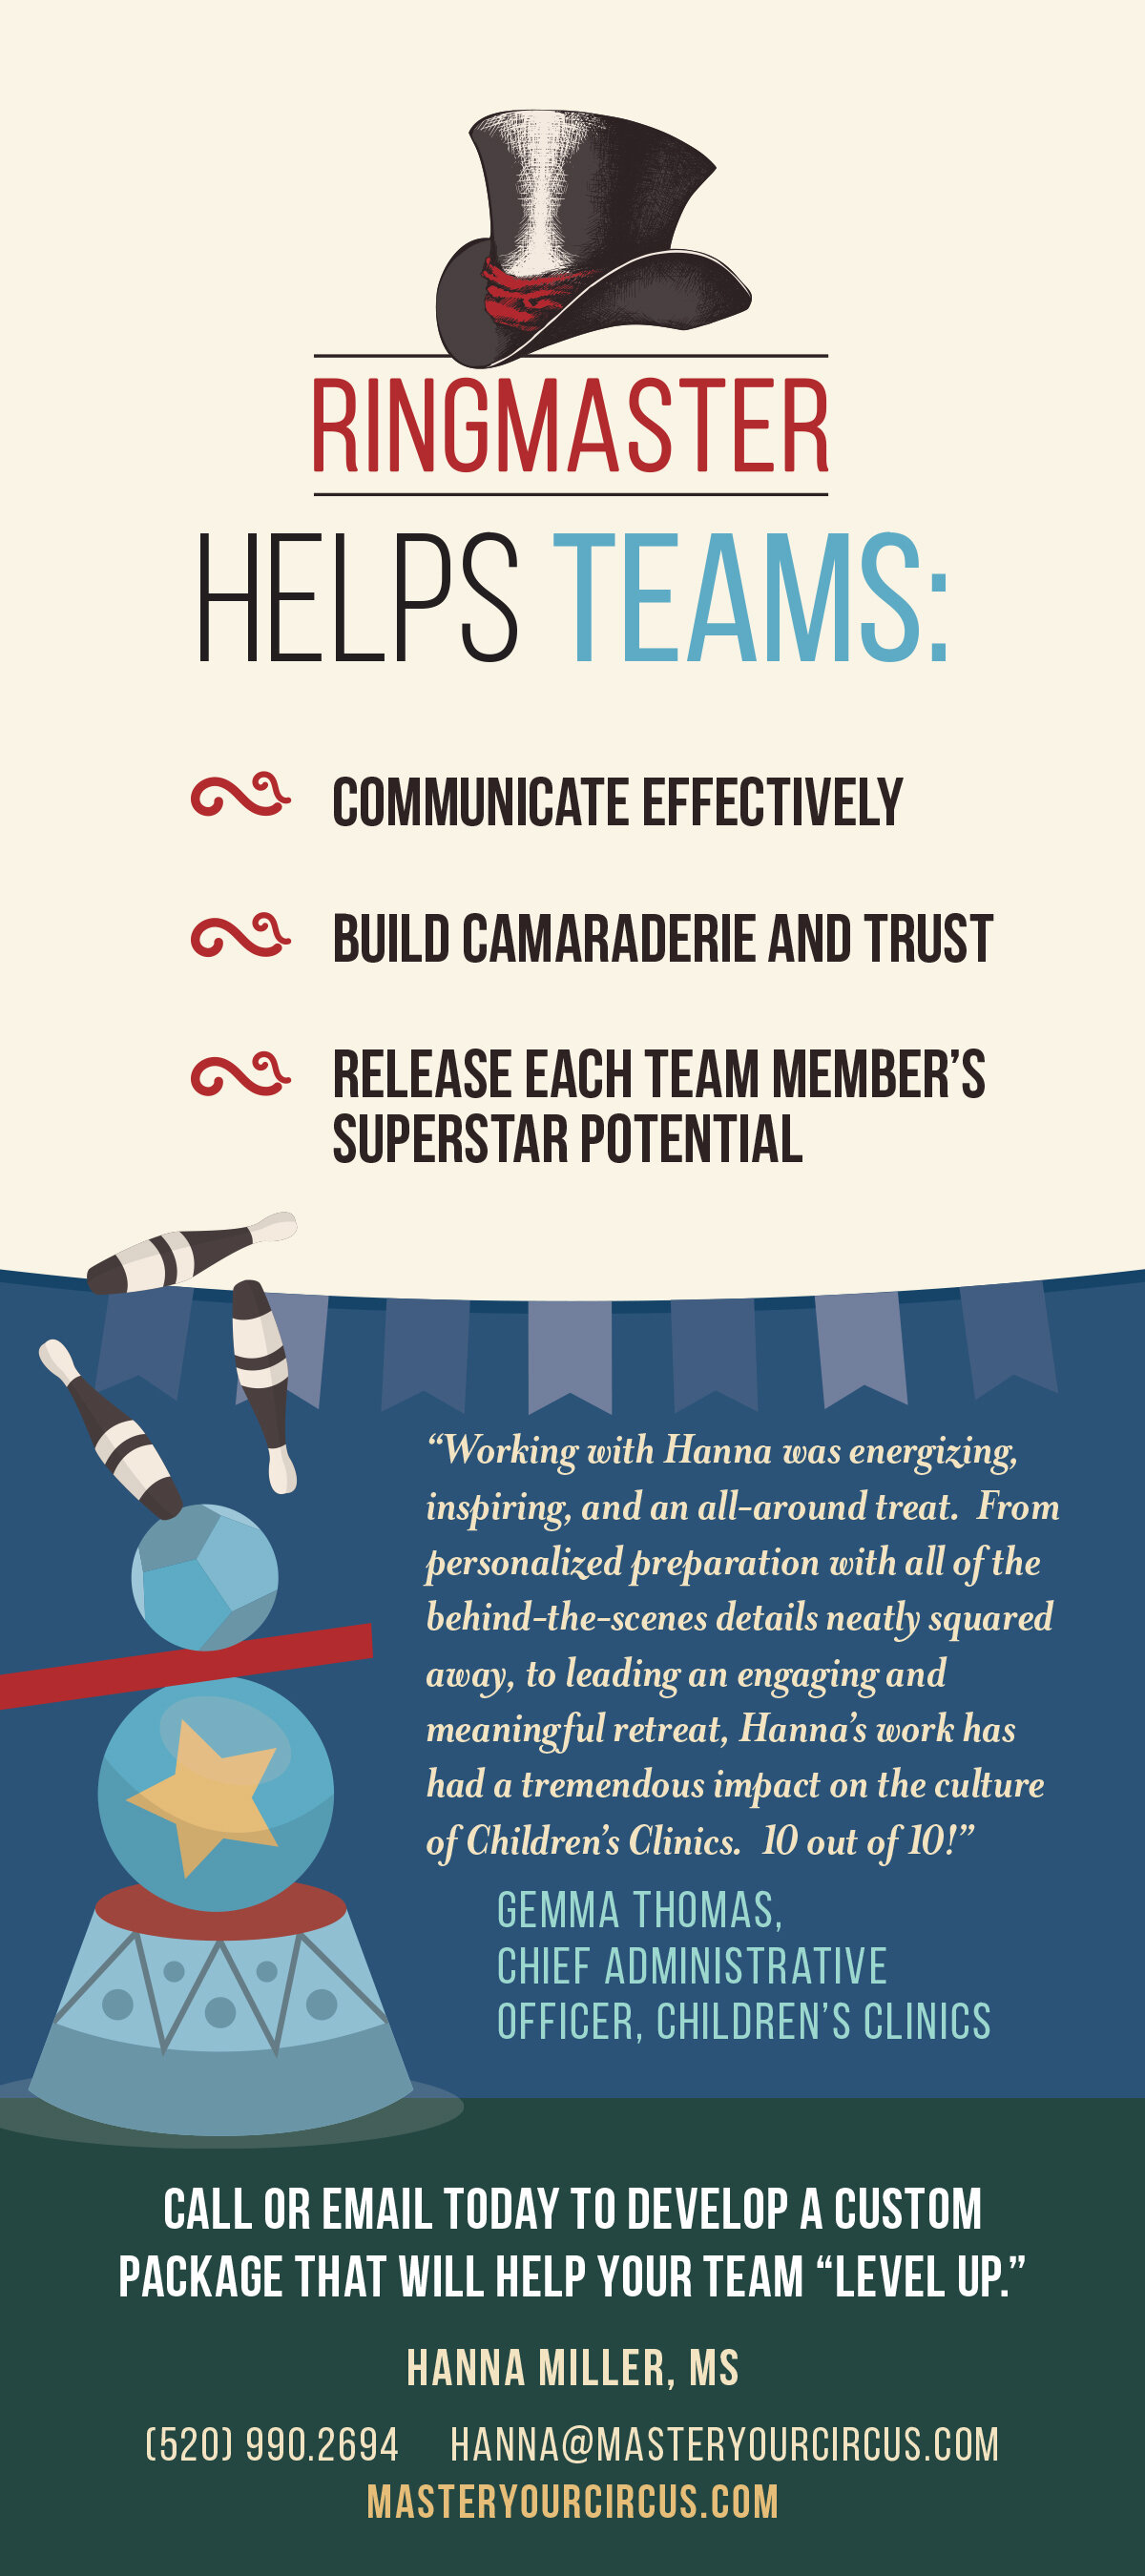 Helps-Teams-091719.jpg